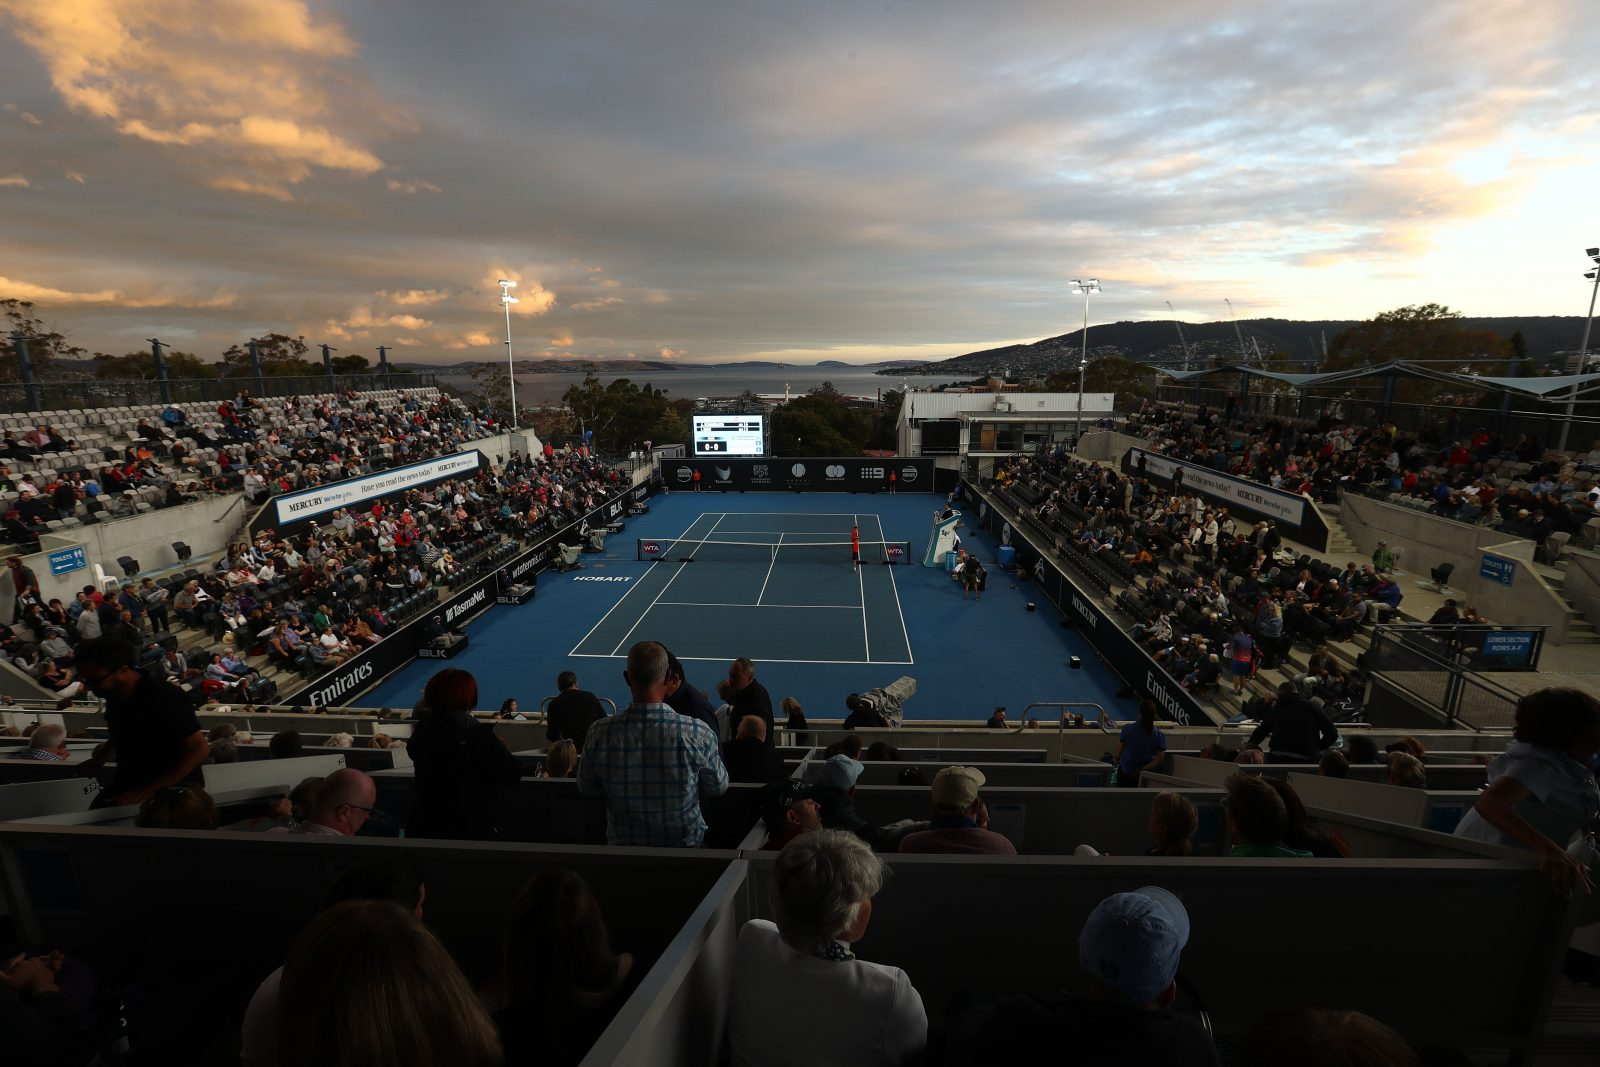 Hobart International centre court tennis action